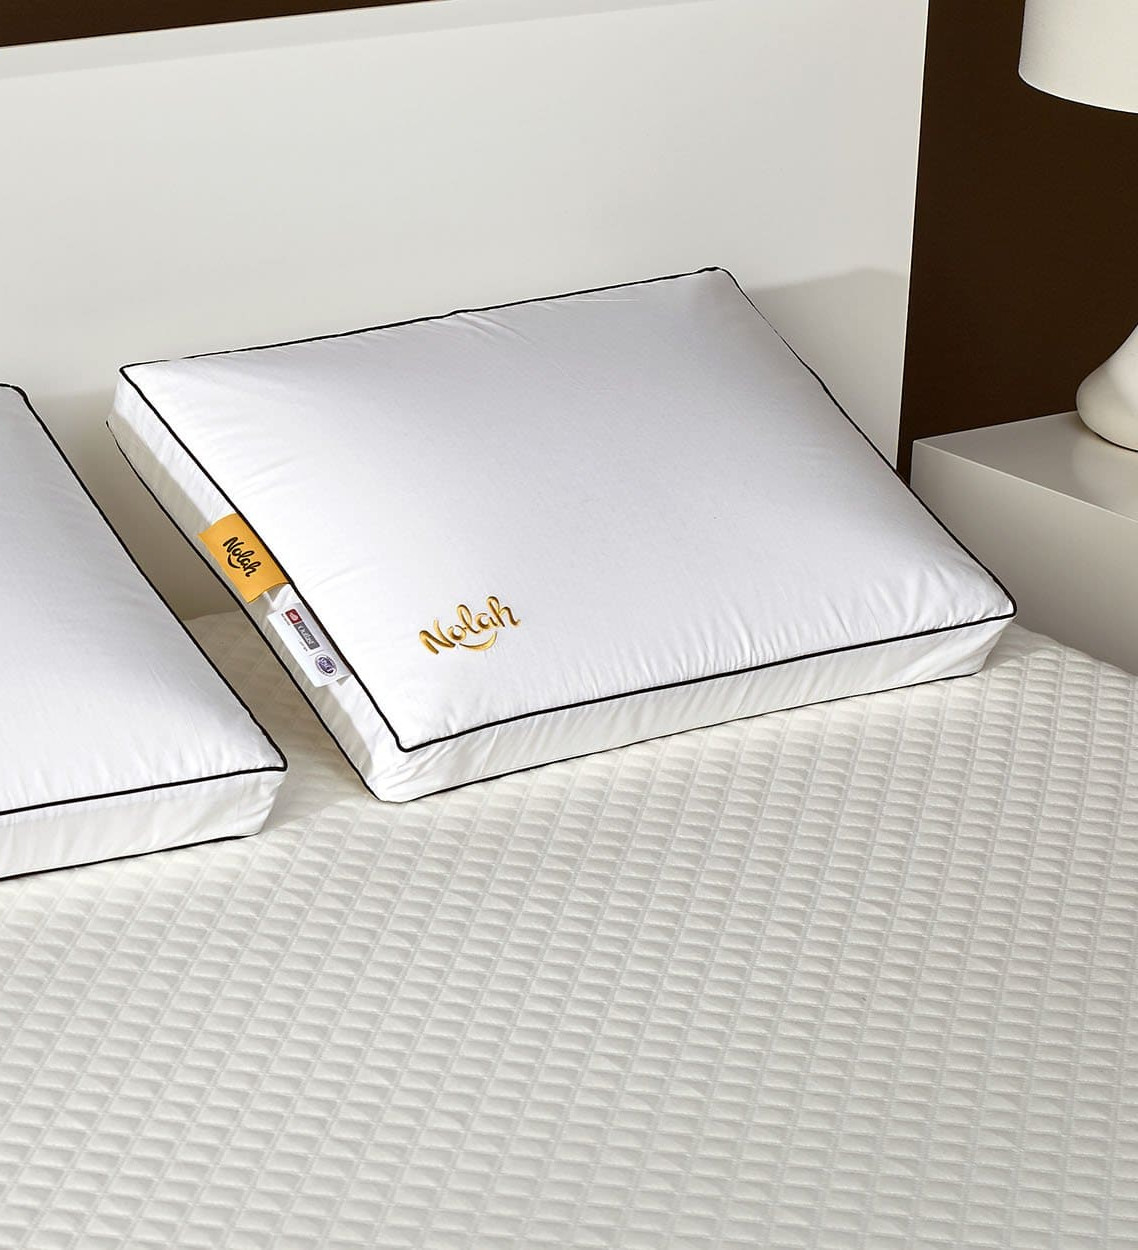 is airfoam comfortable in pillows?